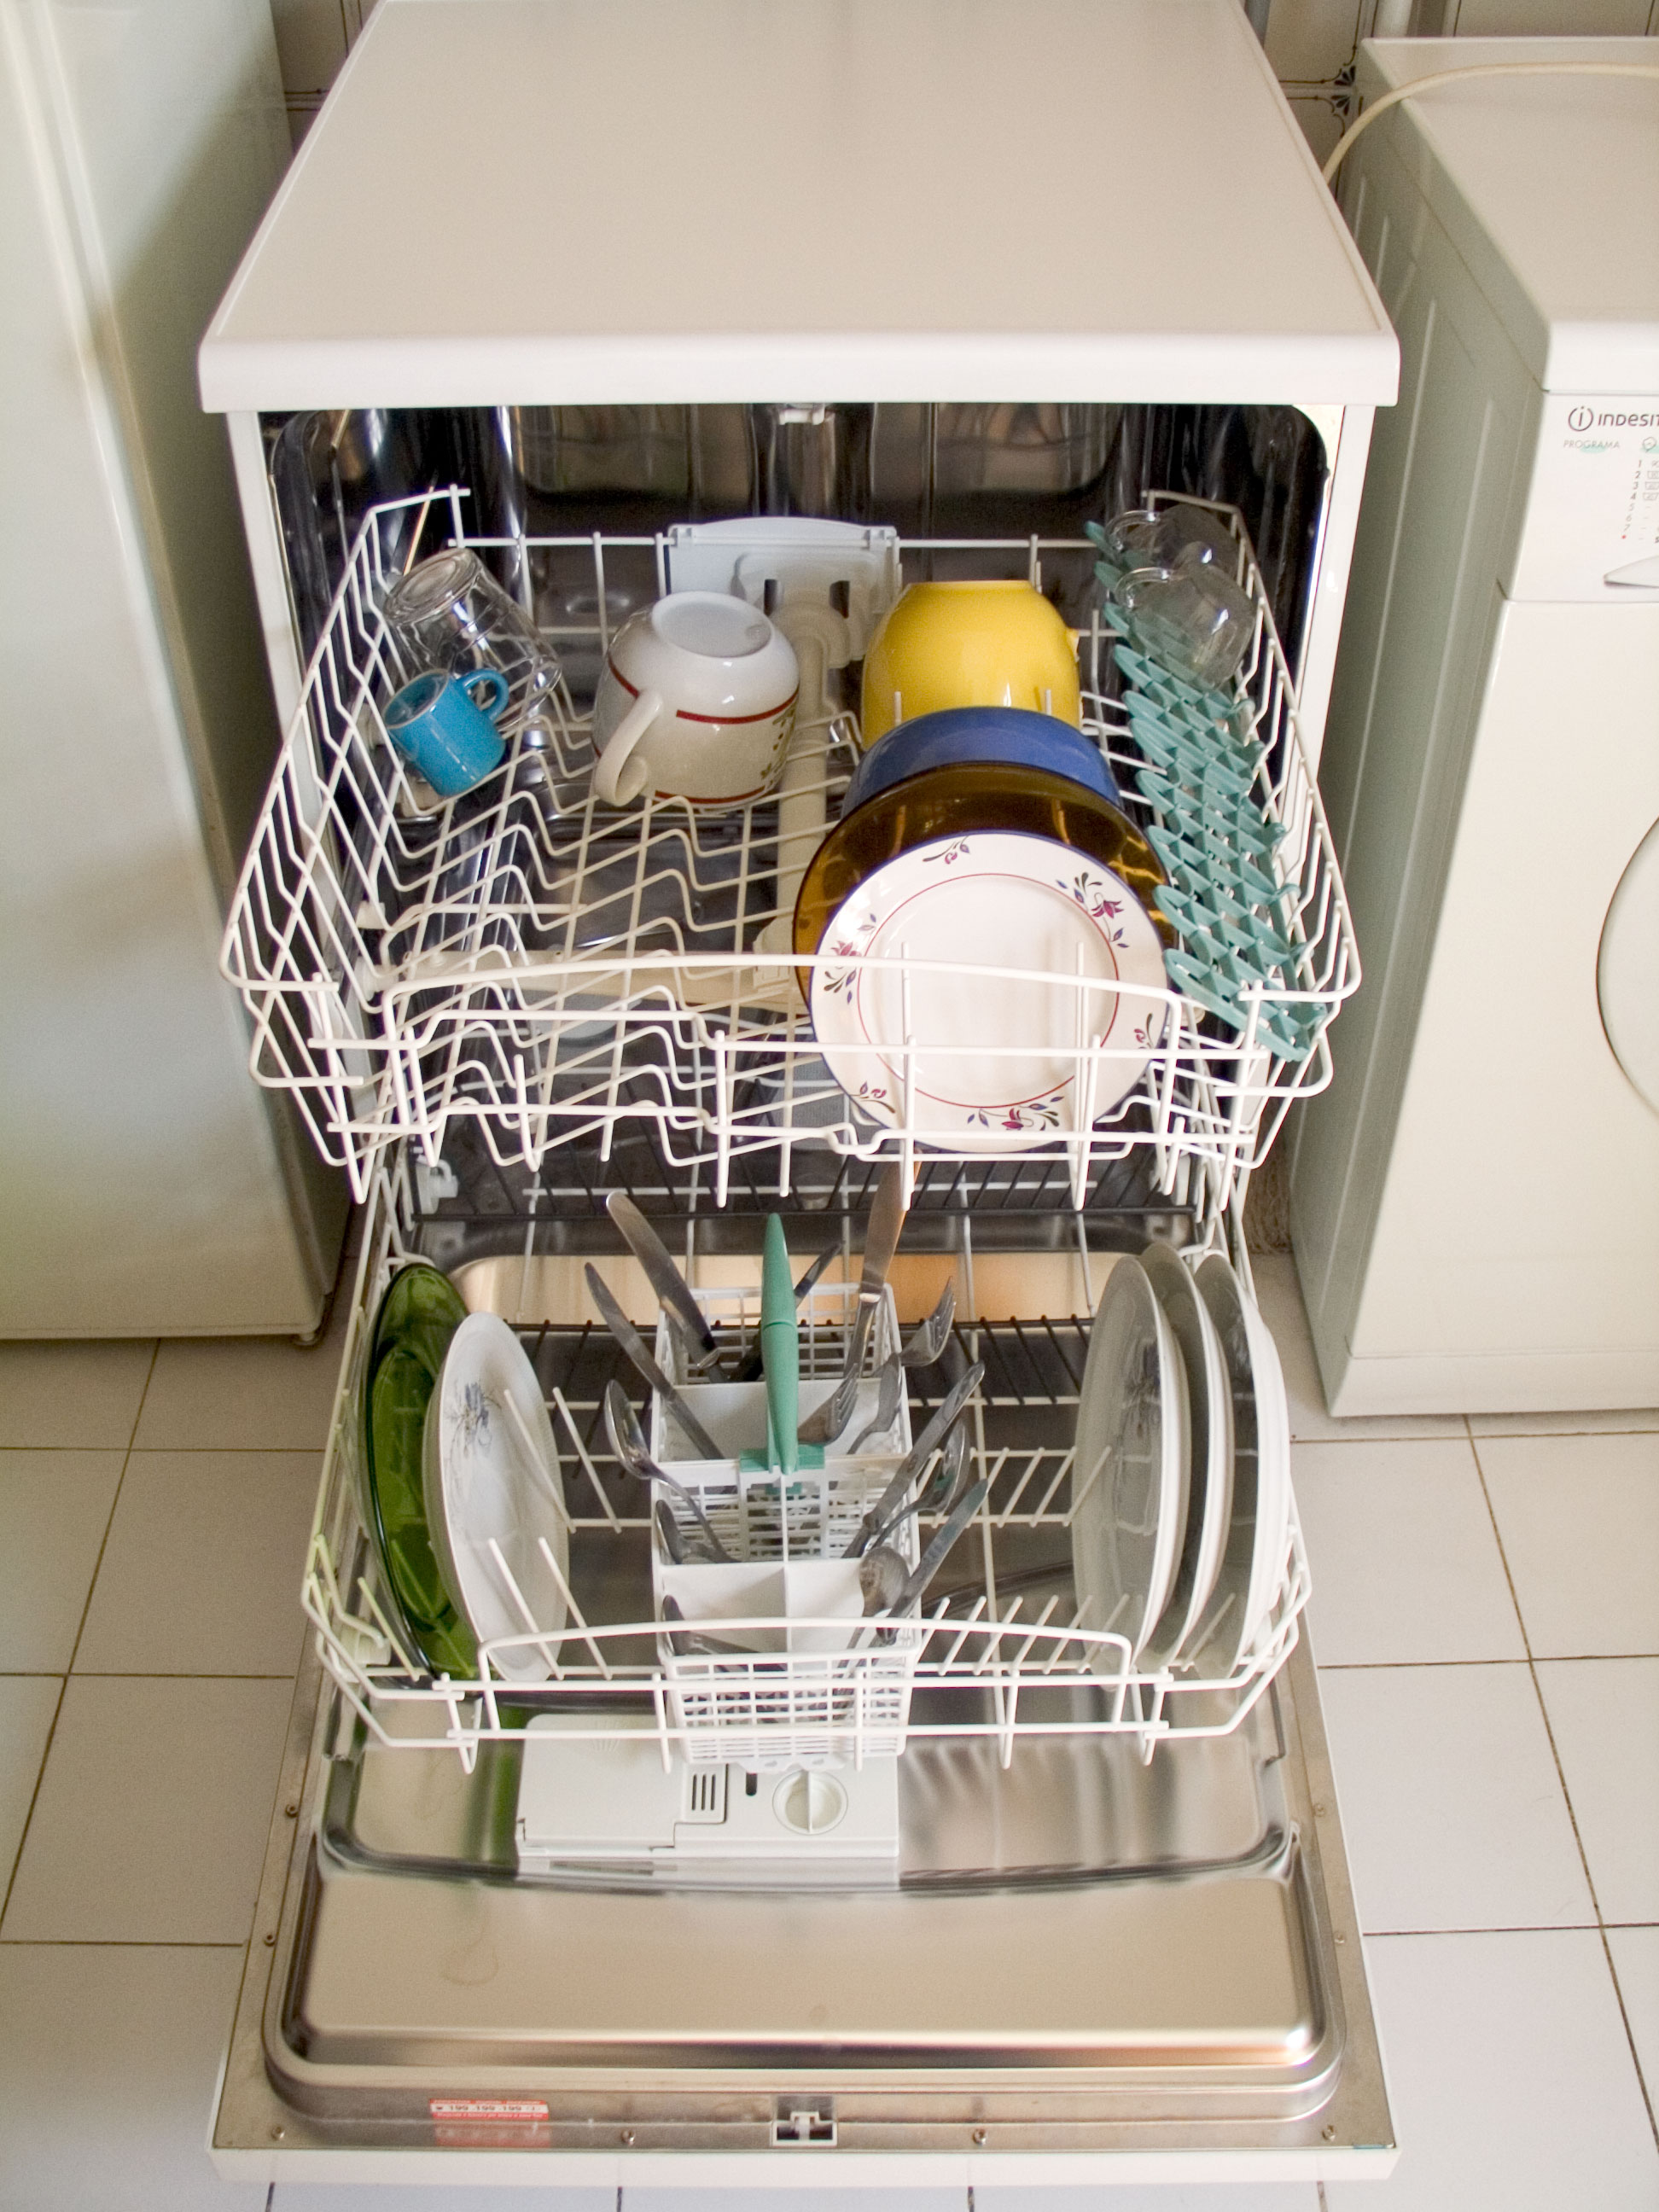 dish soap in washer machine